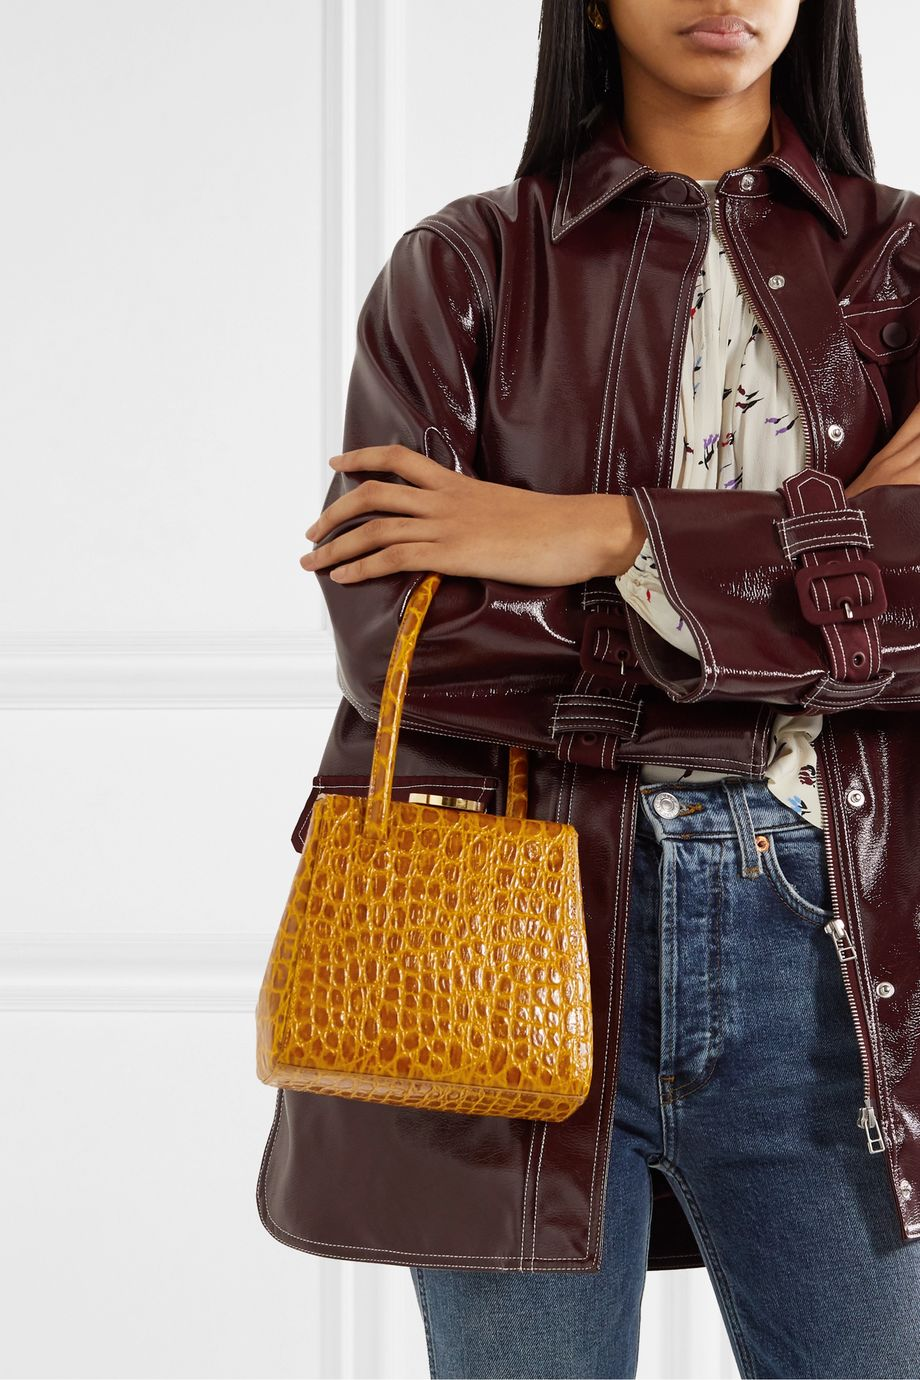 Little Liffner Mademoiselle croc-effect leather tote